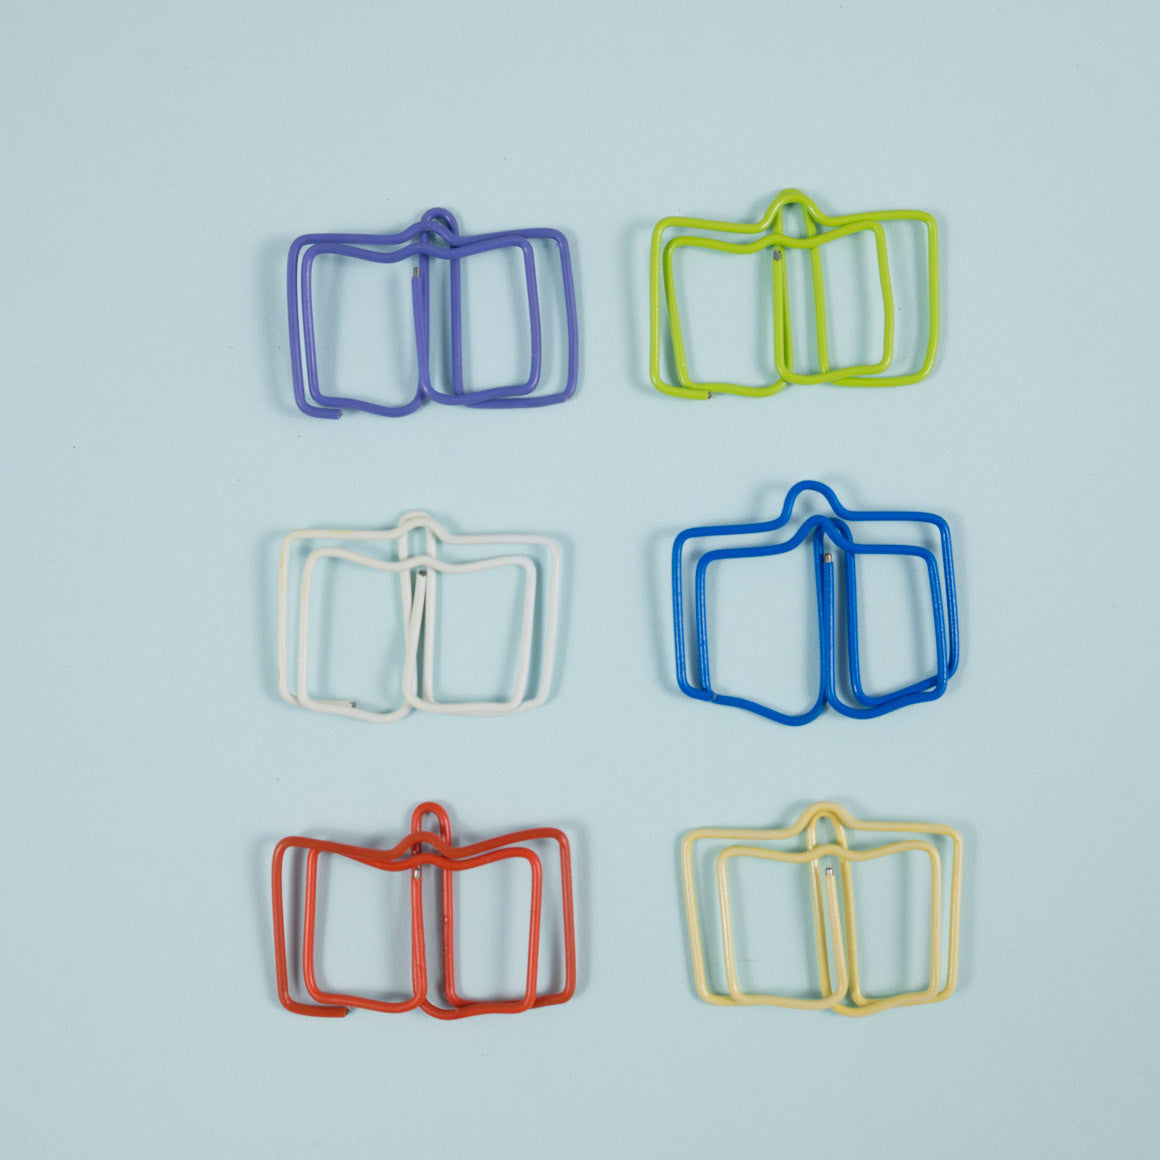 Book shaped paper clips